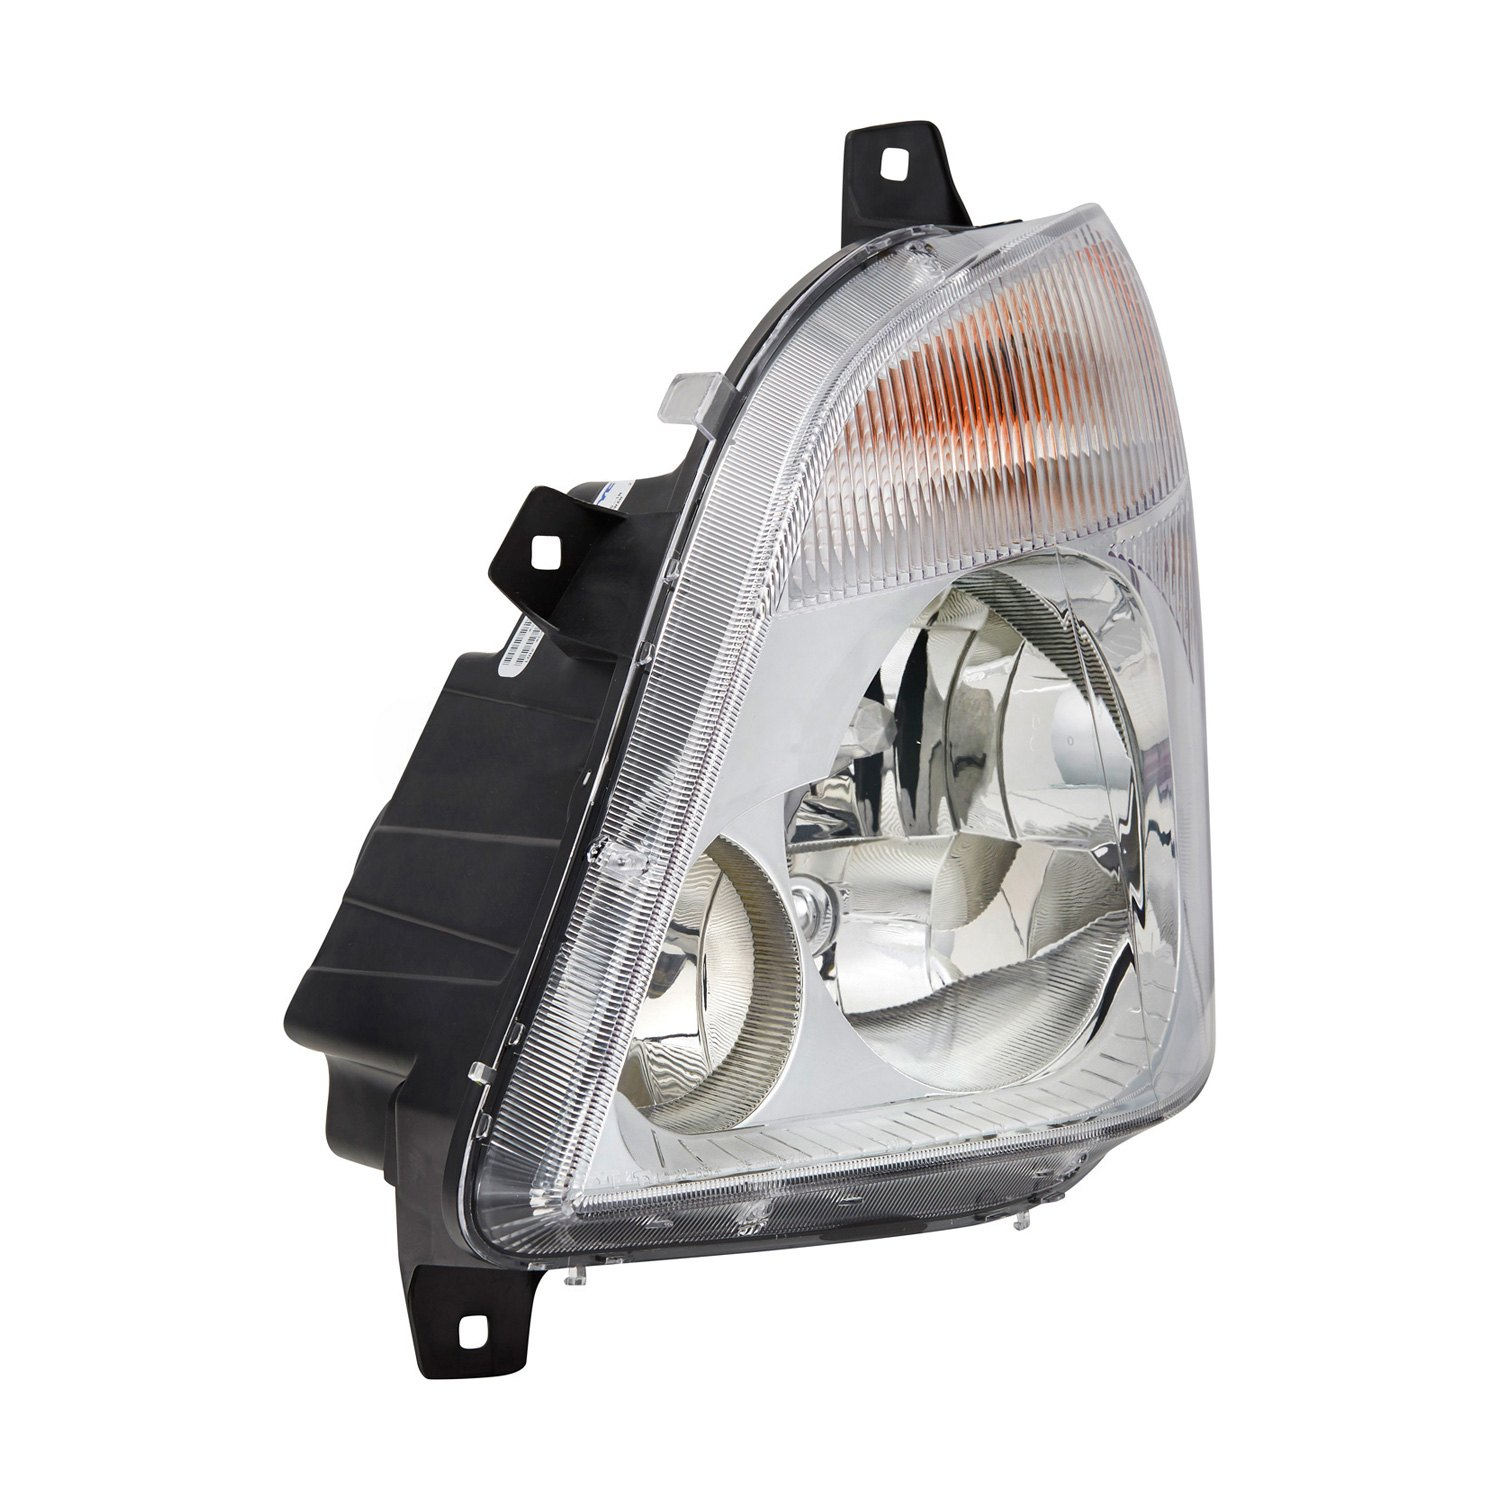 Tyc mercedes sprinter 2500 sprinter 3500 with factory for Mercedes benz headlight replacement